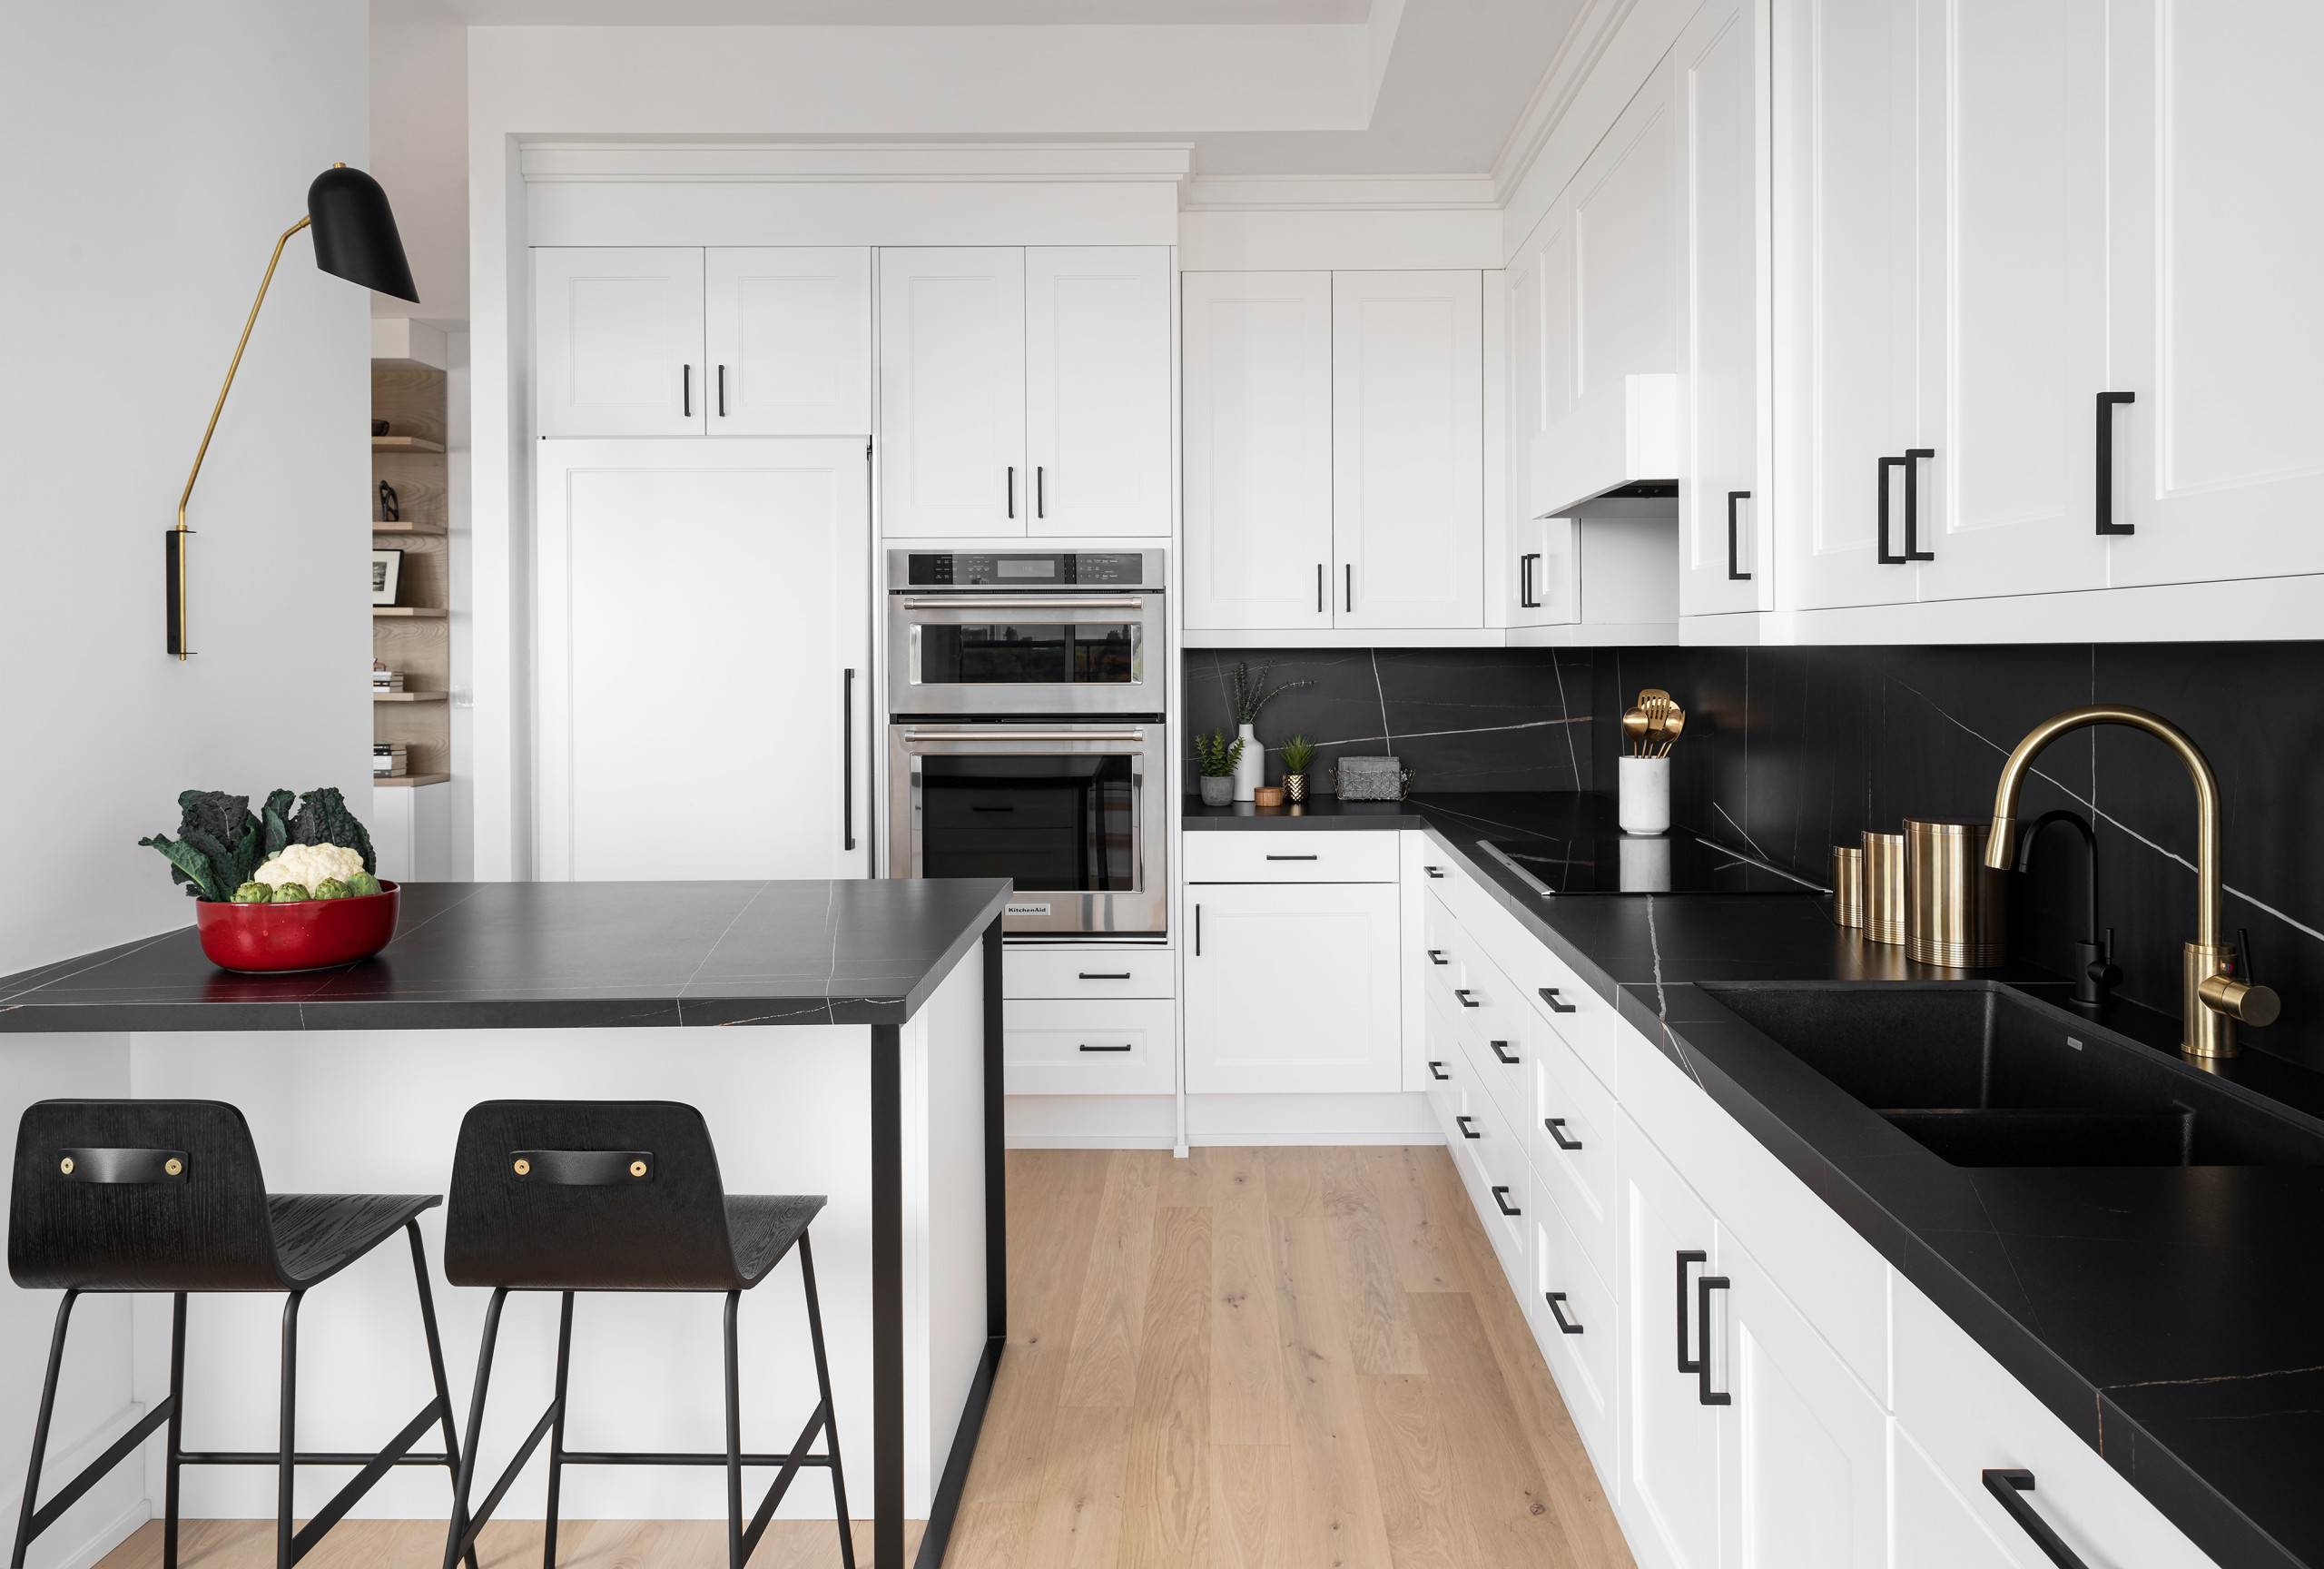 75 Beautiful Kitchen With White Appliances And Black Countertops Pictures Ideas January 2021 Houzz